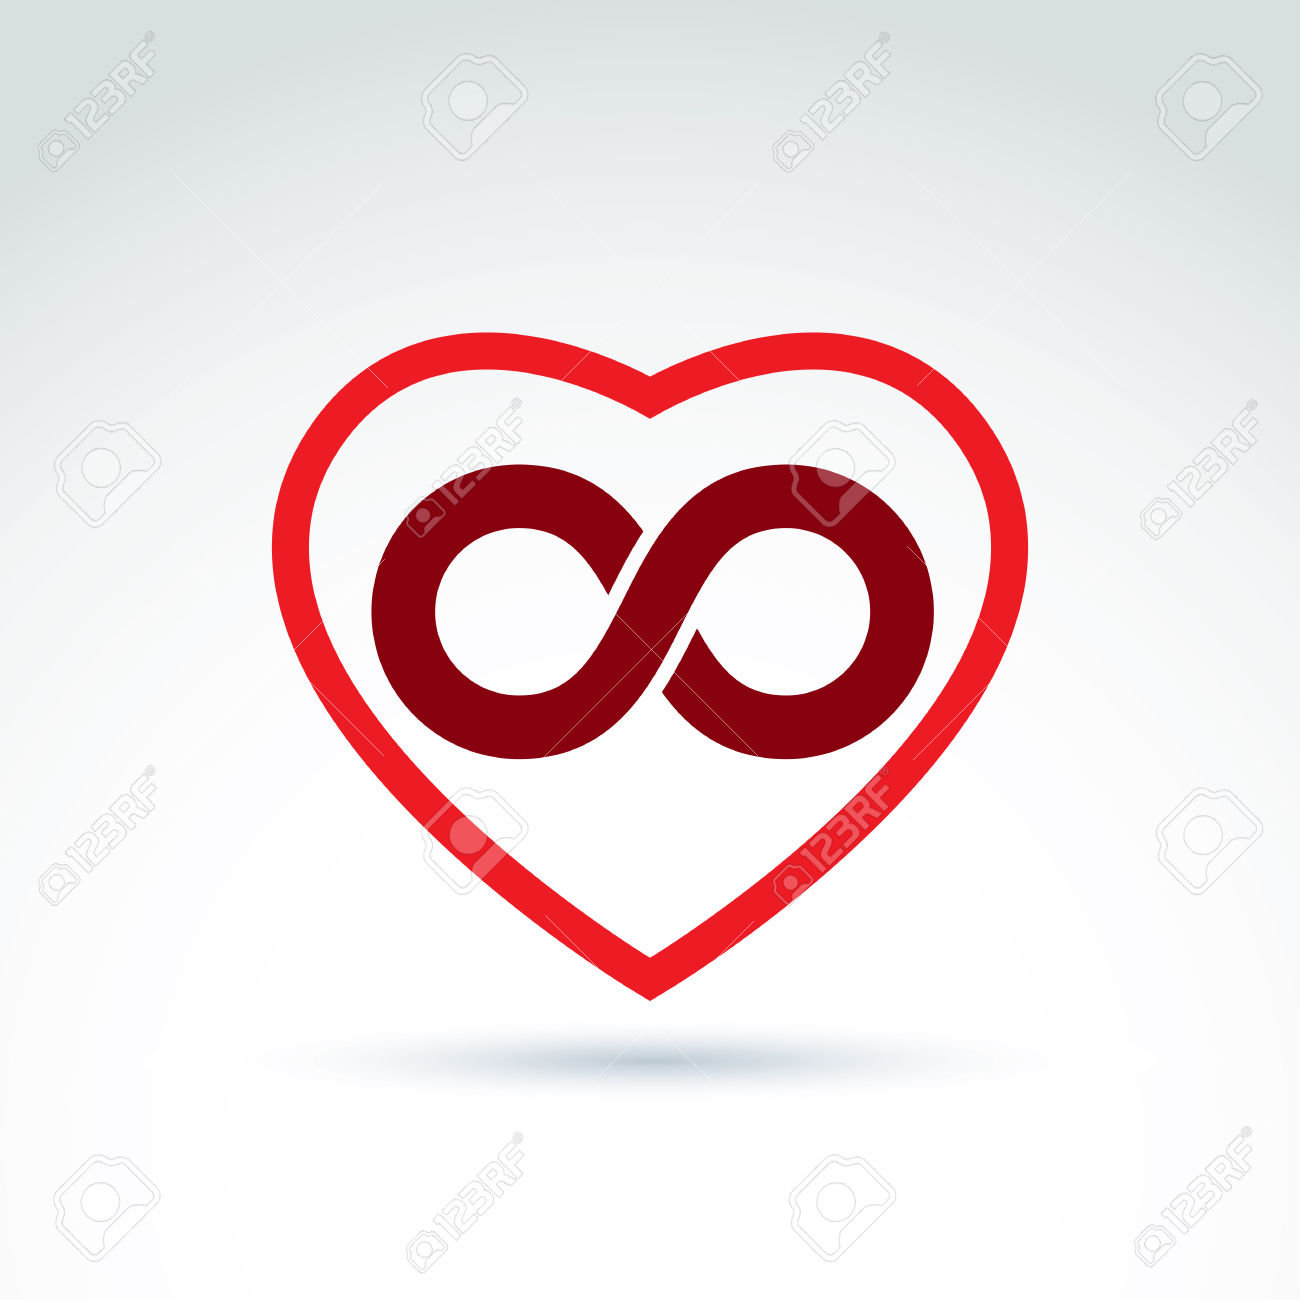 Hearts symbol forever love clipart png freeuse library Vector Infinity Icon, Eternal Life Idea. Illustration Of An ... png freeuse library